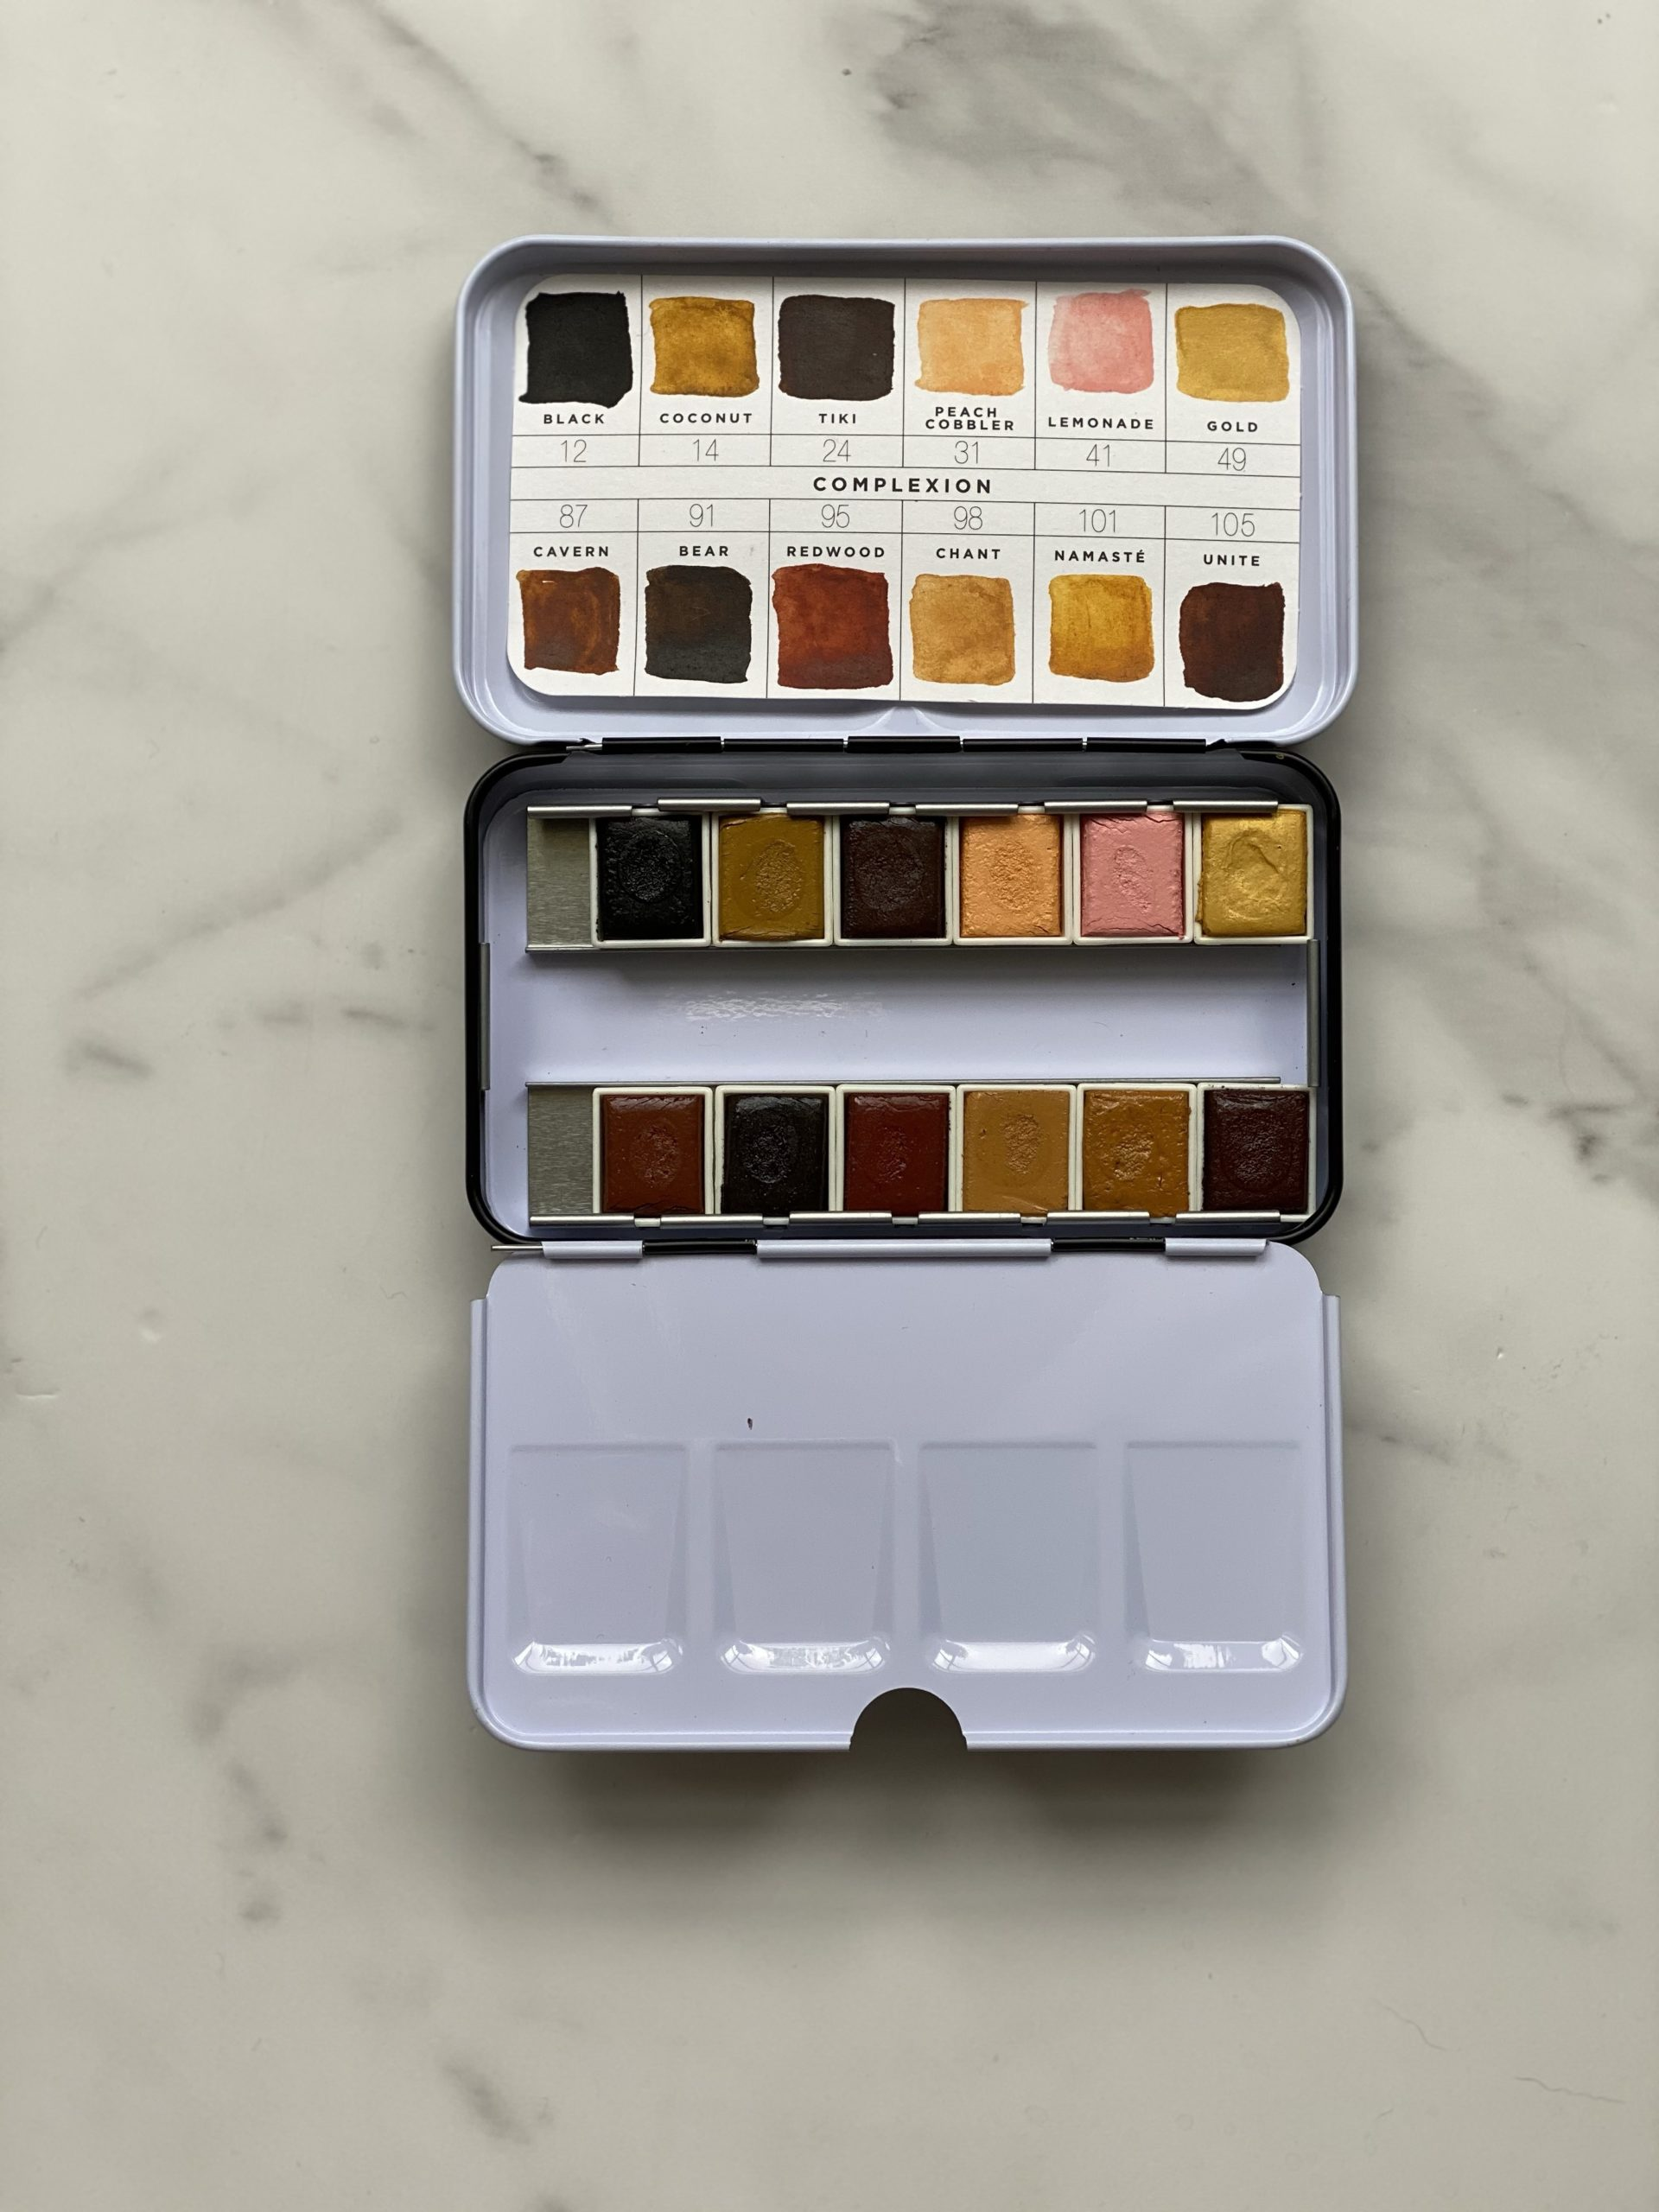 This is their palette for painting skin tones.